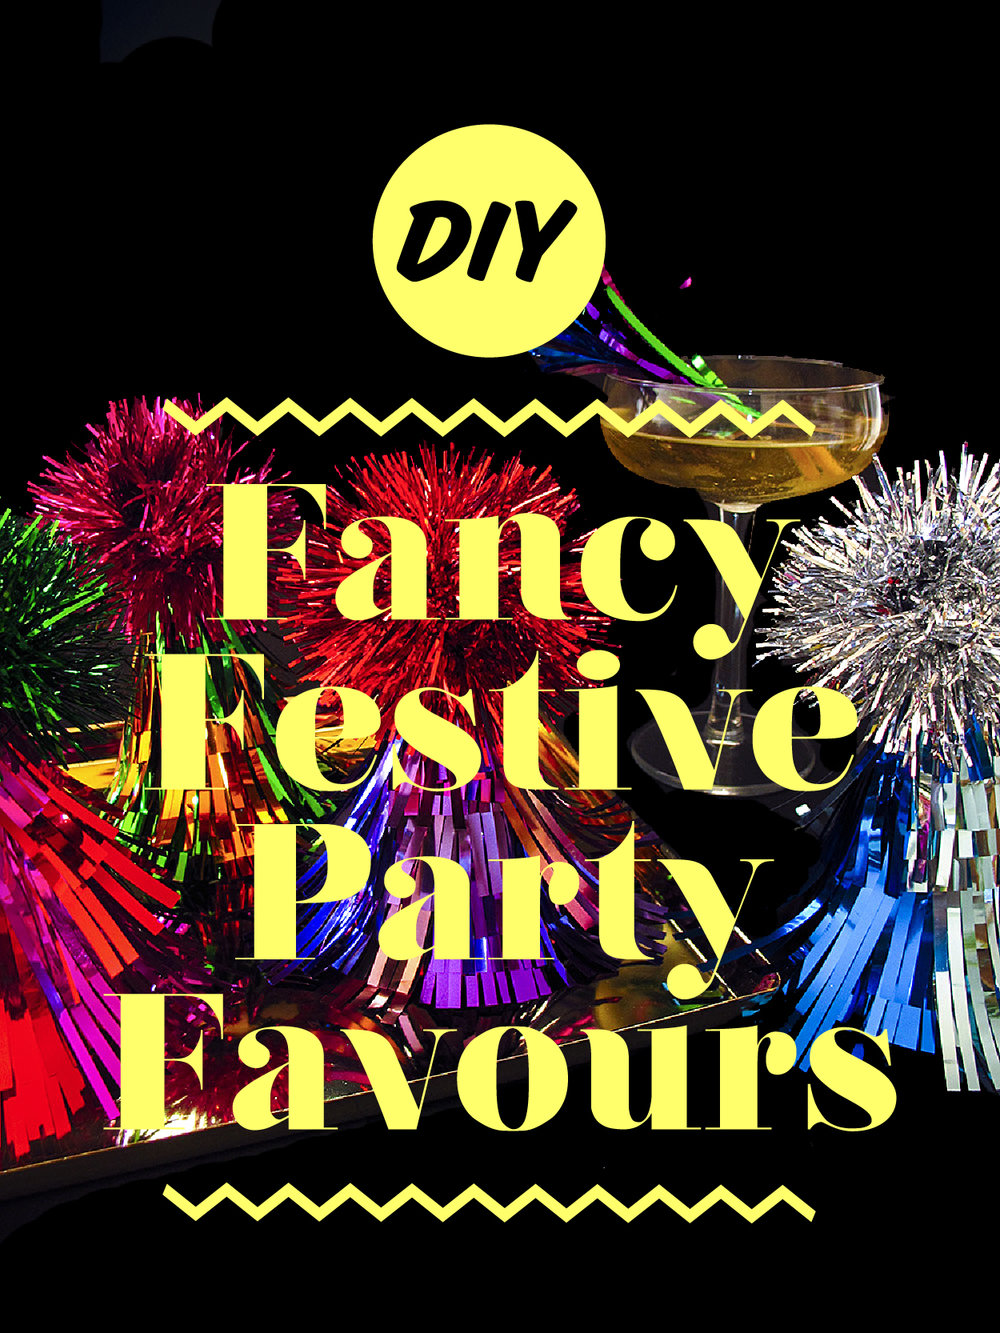 DIY Fancy Festive Party Favours by Kitiya Palaskas.jpg